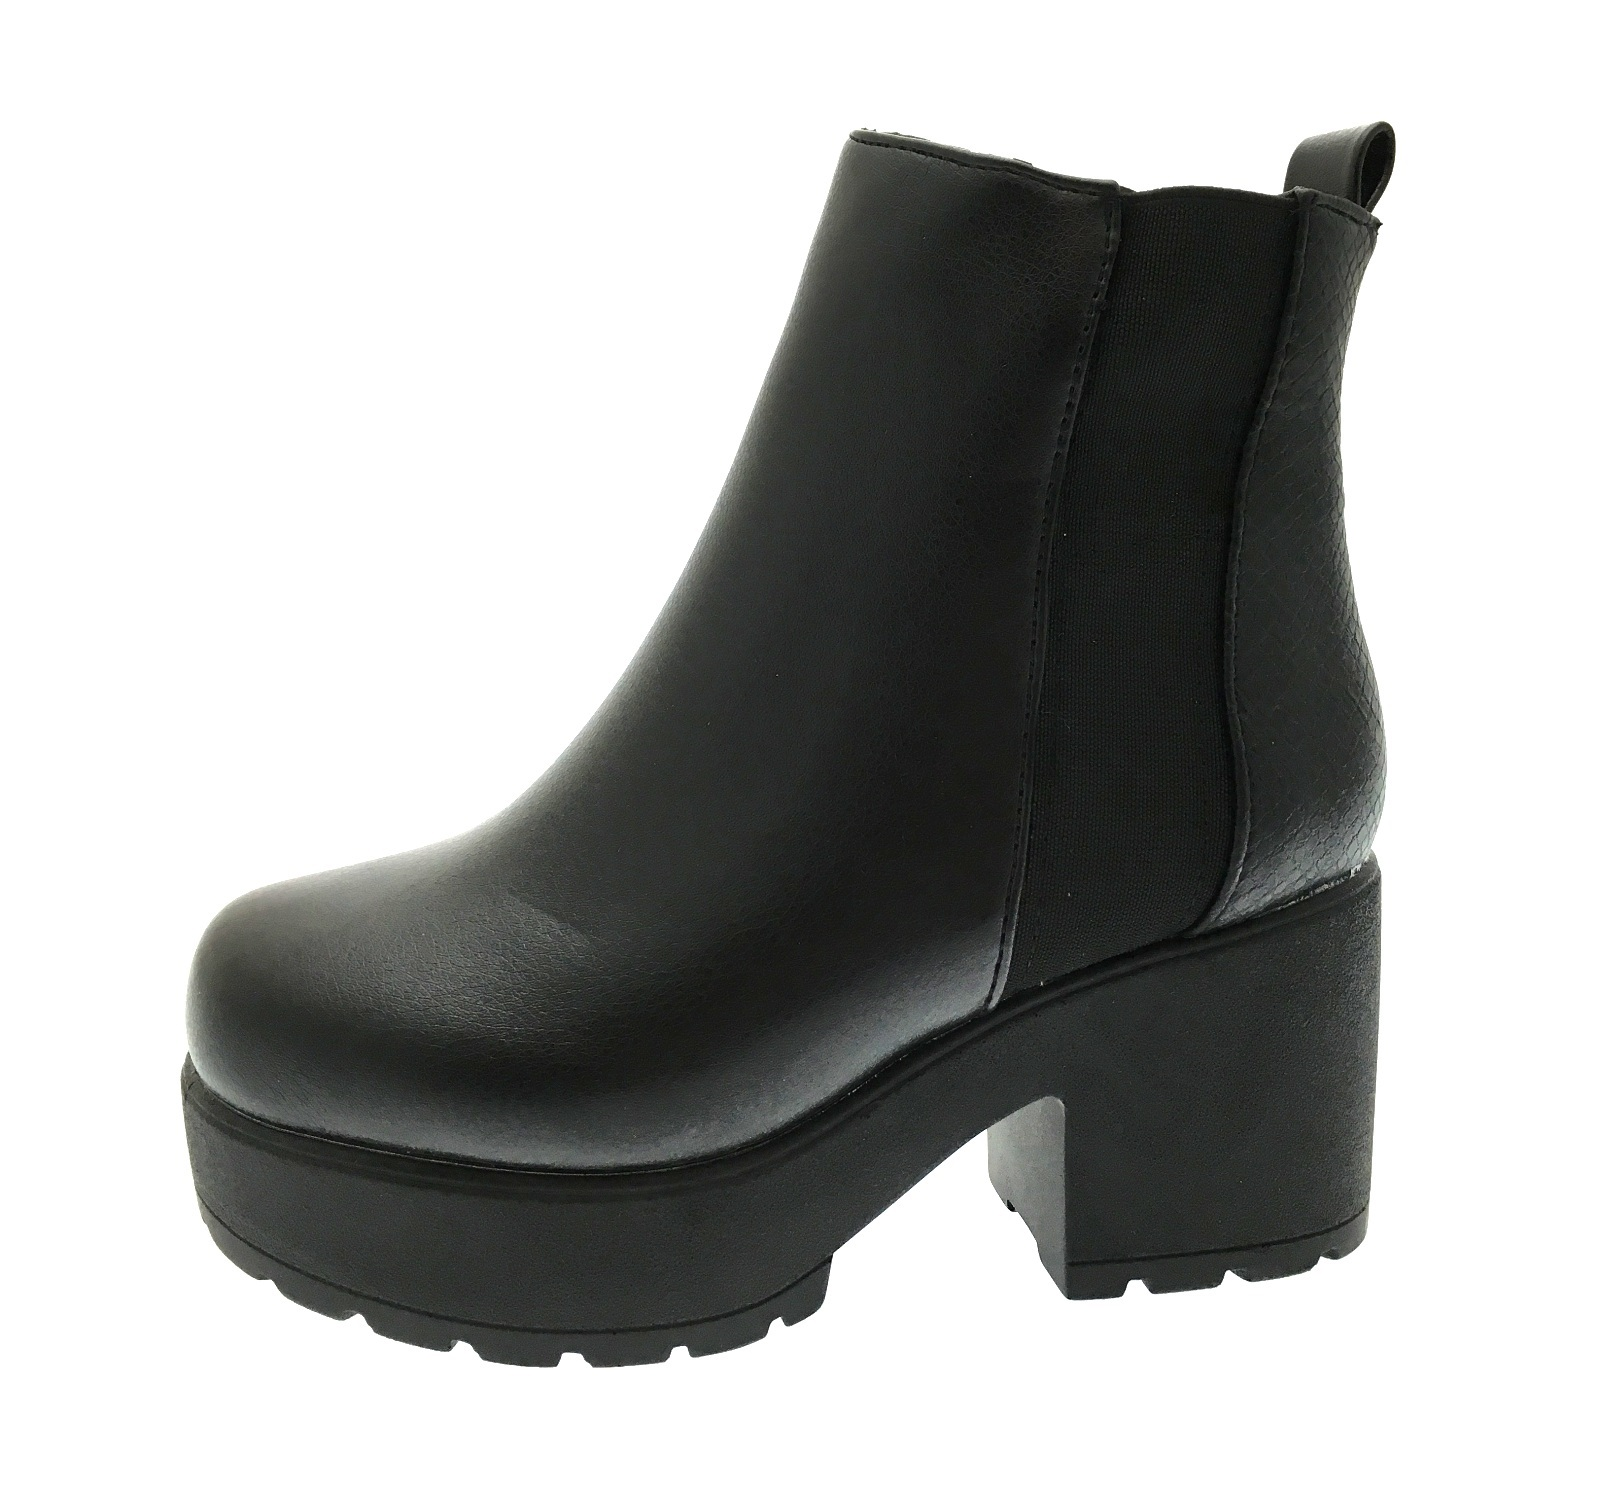 643cb500dffbb Kids Girls Mid Chunky Block Heel Chelsea Low Ankle Boots Platforms ...